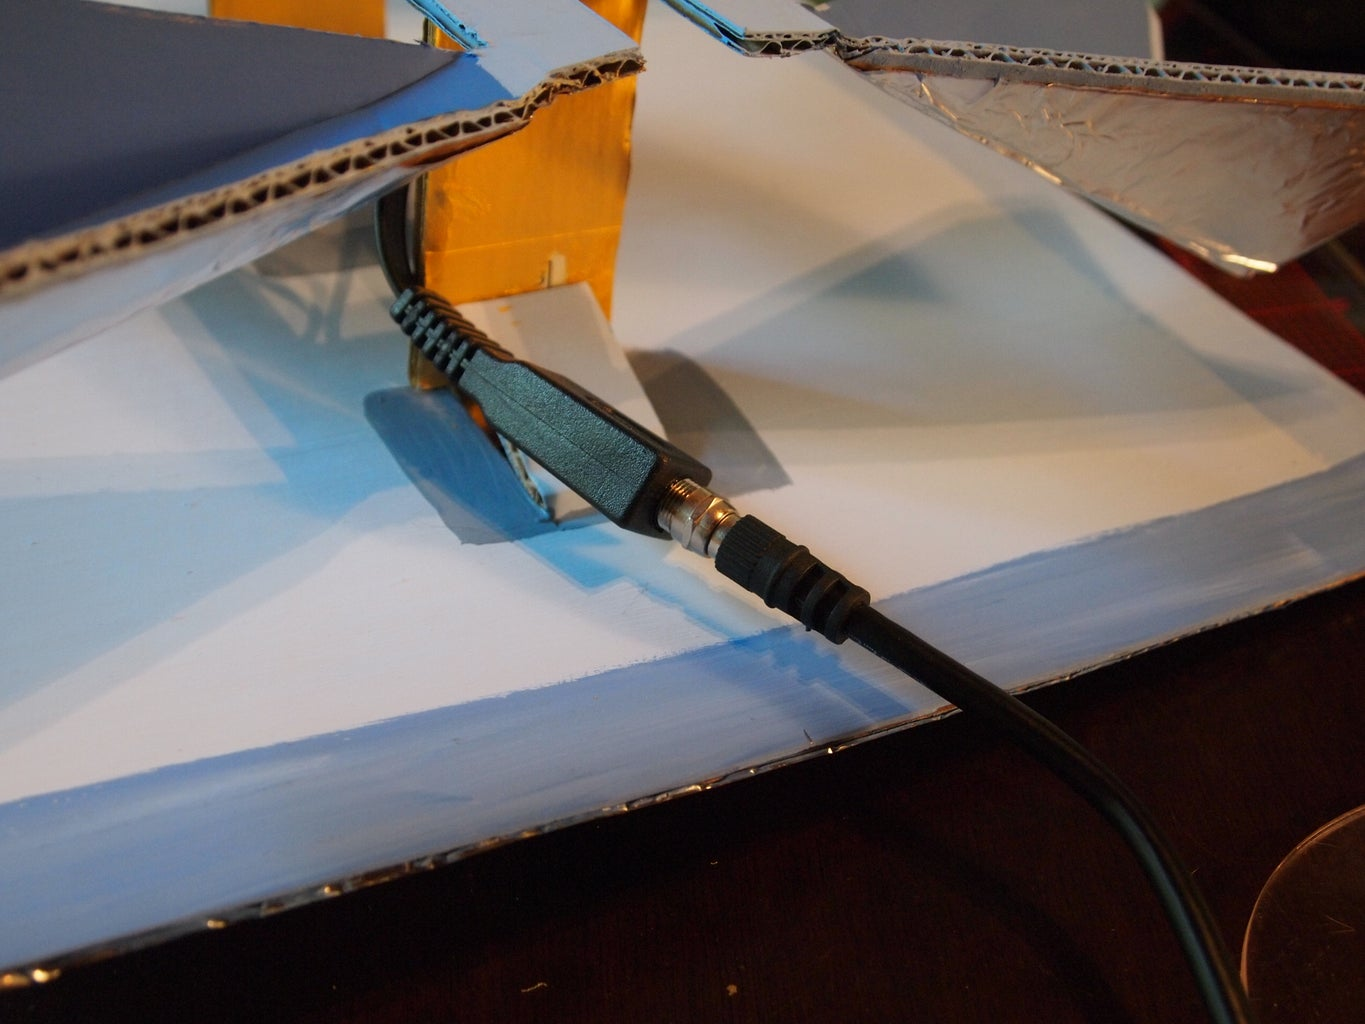 The Wiring for the Antenna